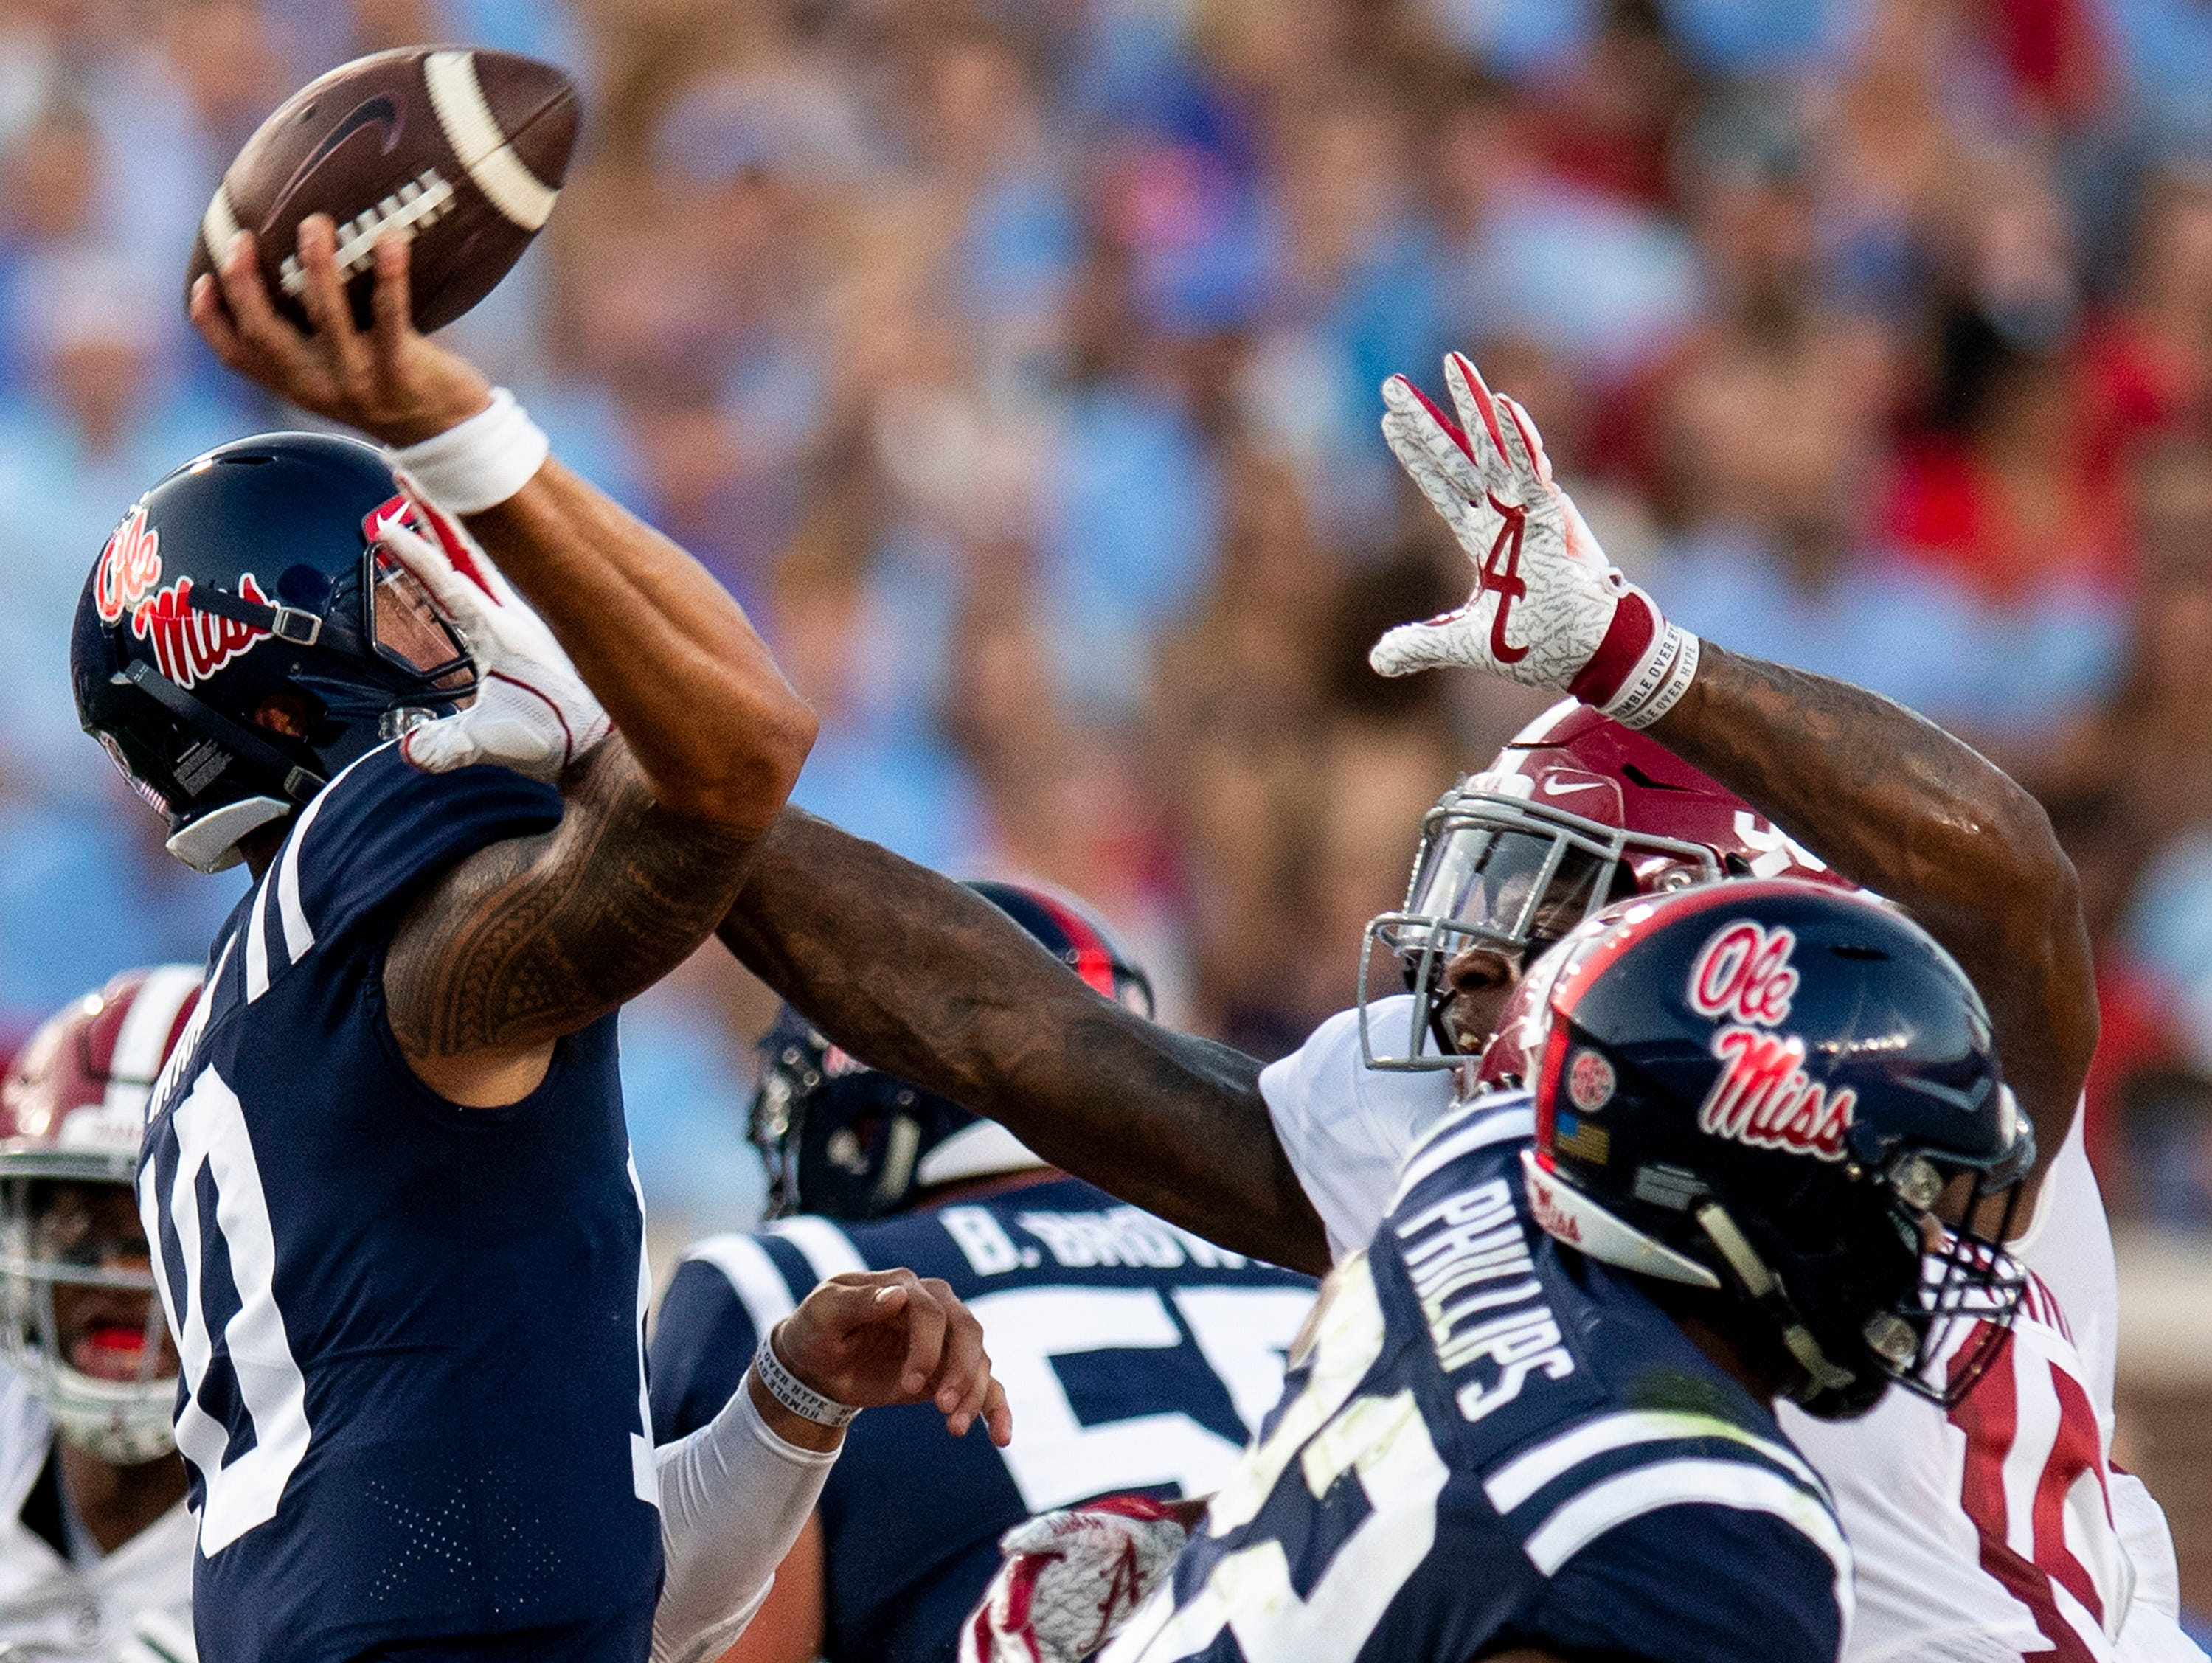 Alabama linebacker Anfernee Jennings (33) gets a hand on Ole Miss quarterback Jordan Ta'amu (10)  as he passes In first half action in Oxford, Ms., on Saturday September 15, 2018.